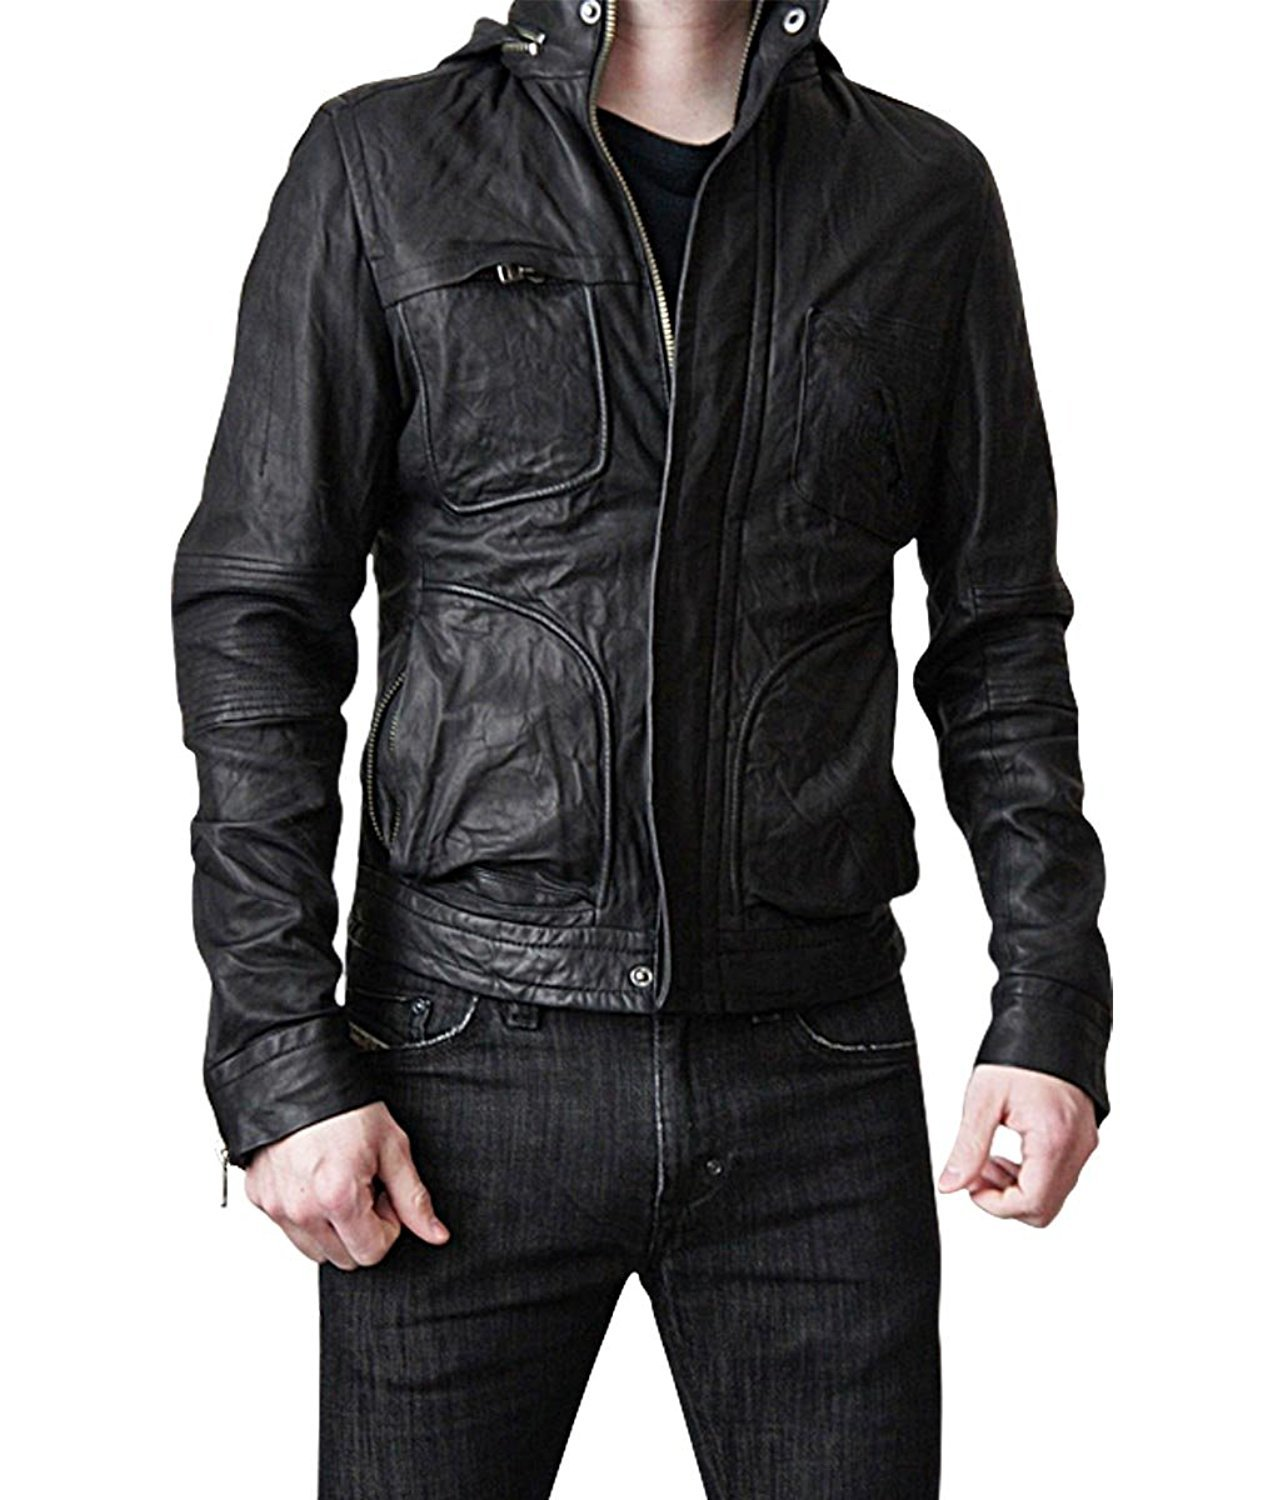 Mission Impossible Ghost Protocol Hooded Movie Jacket - Ethan Hunt MI4 Leather Jacket Christmas Gift (XS)